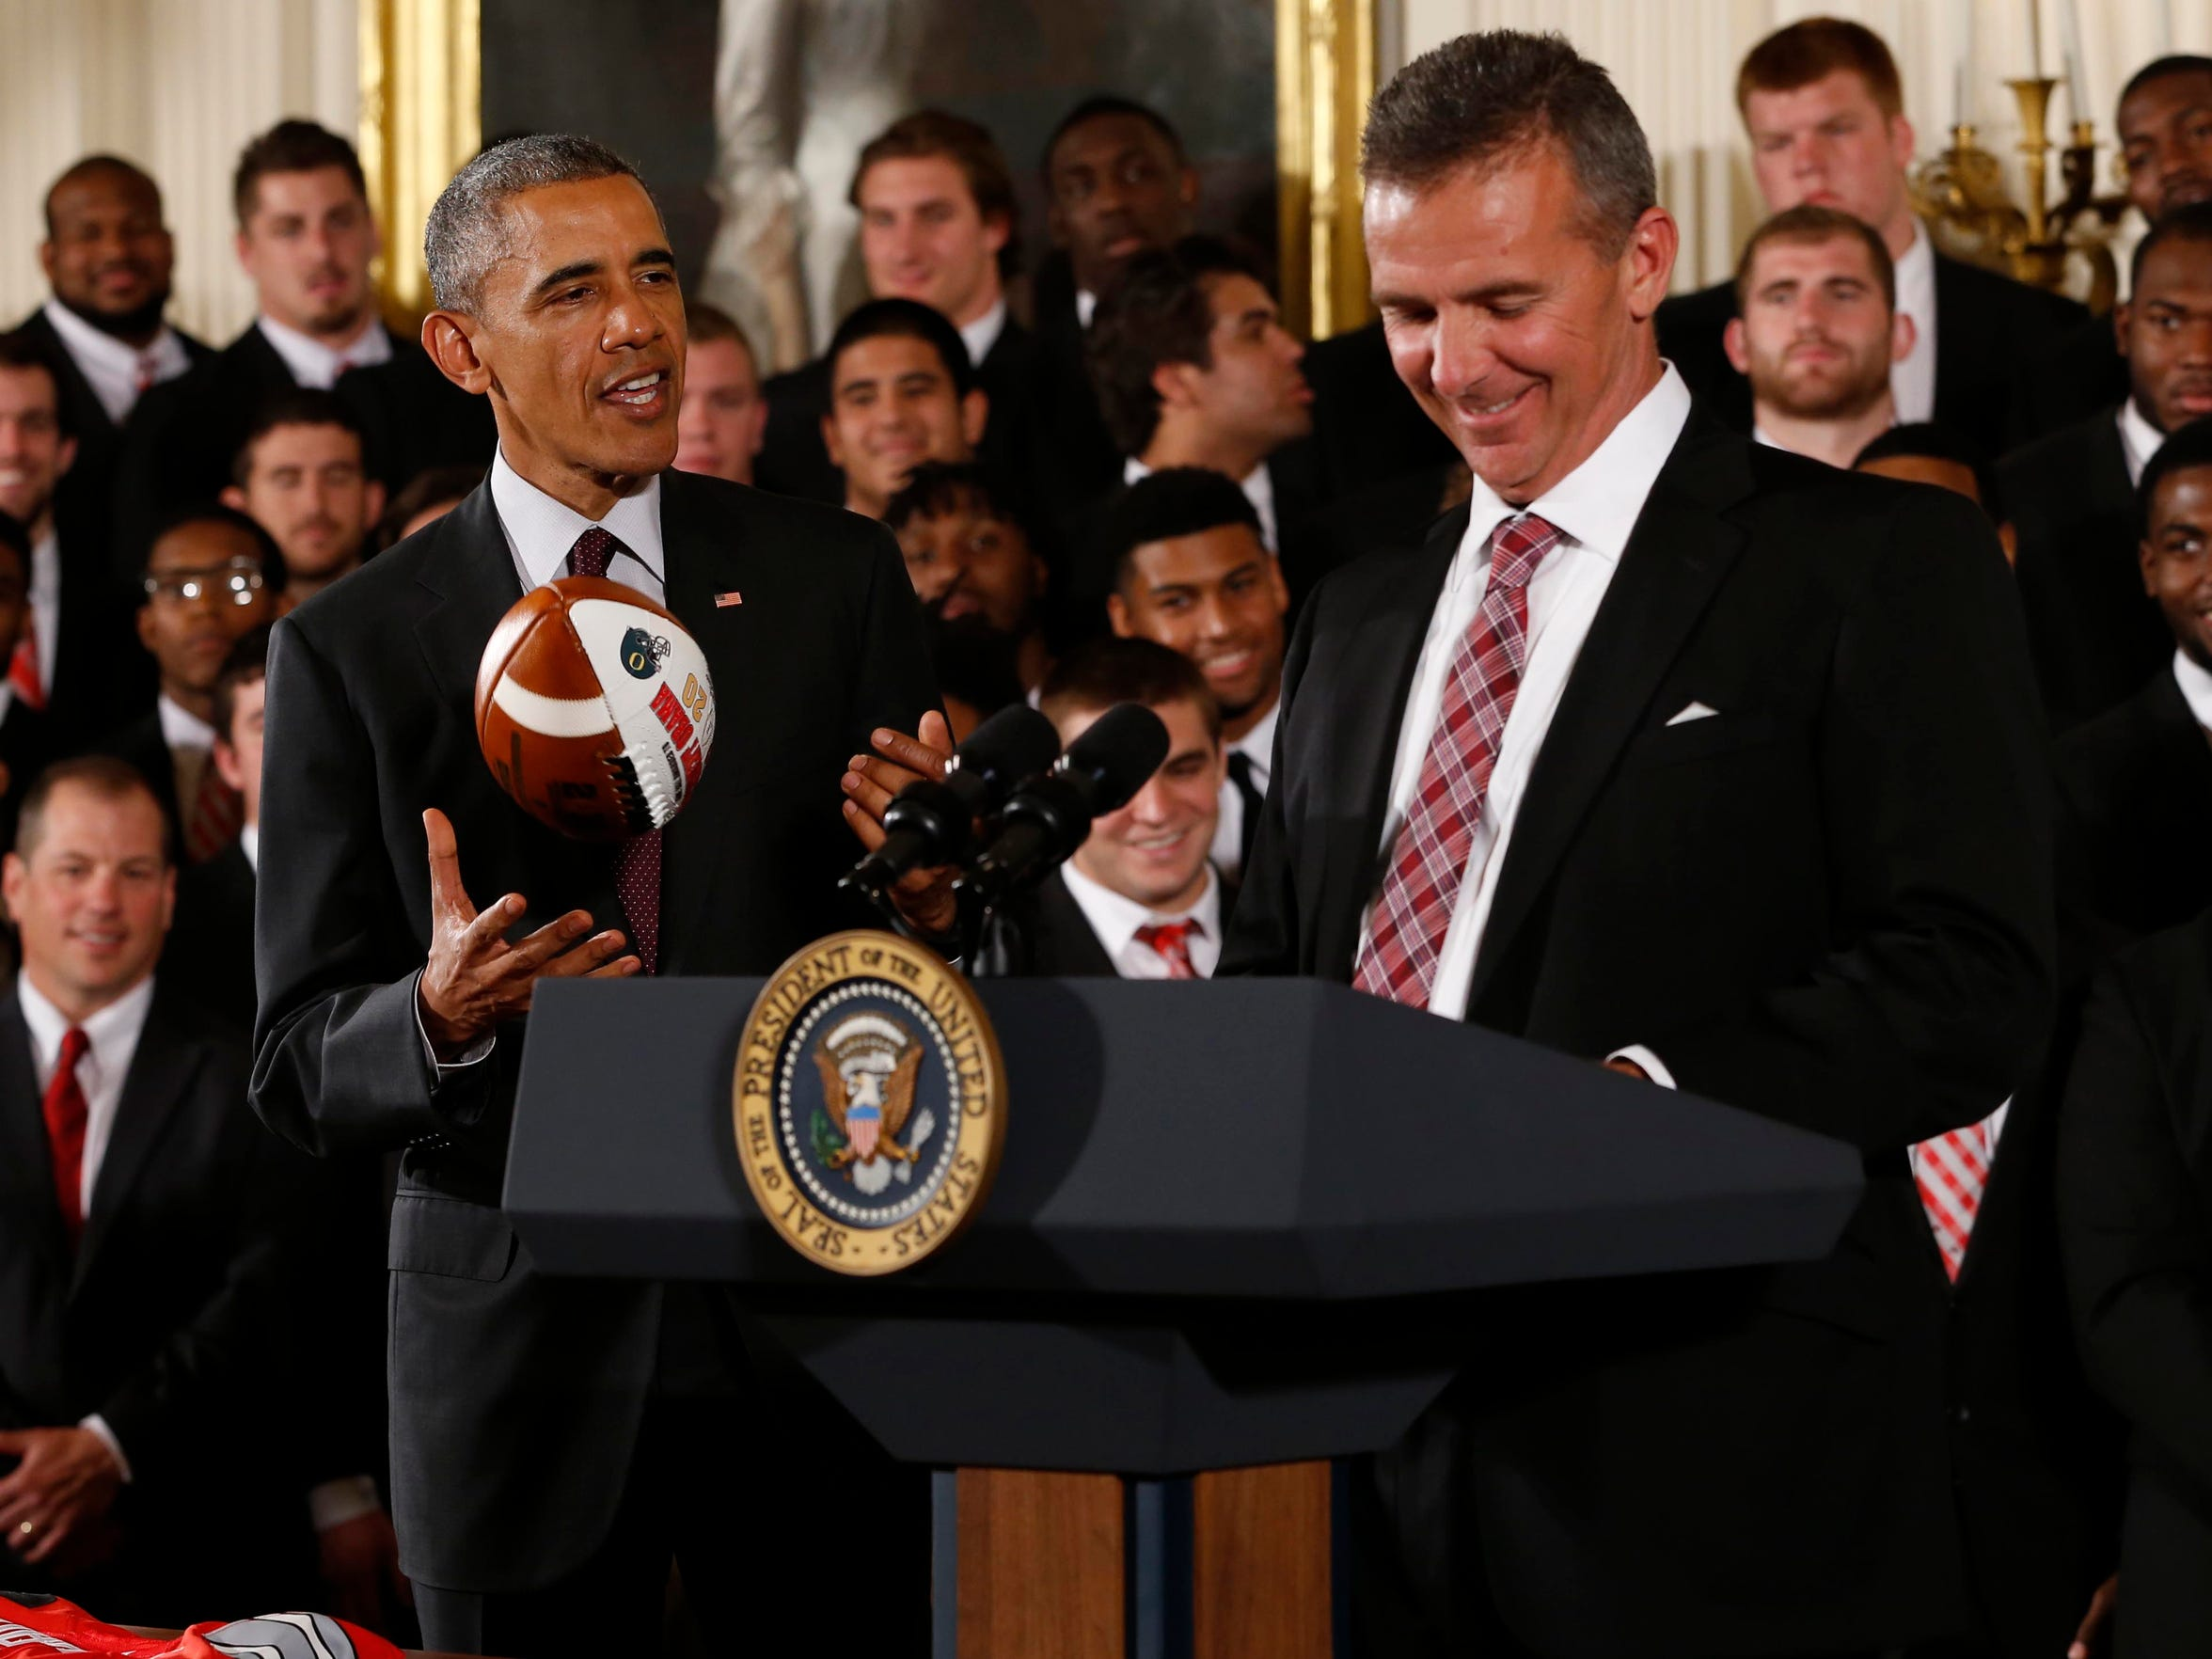 In a three-day span in April, Ohio State and coach Urban Meyer held their spring game and visited the White House.